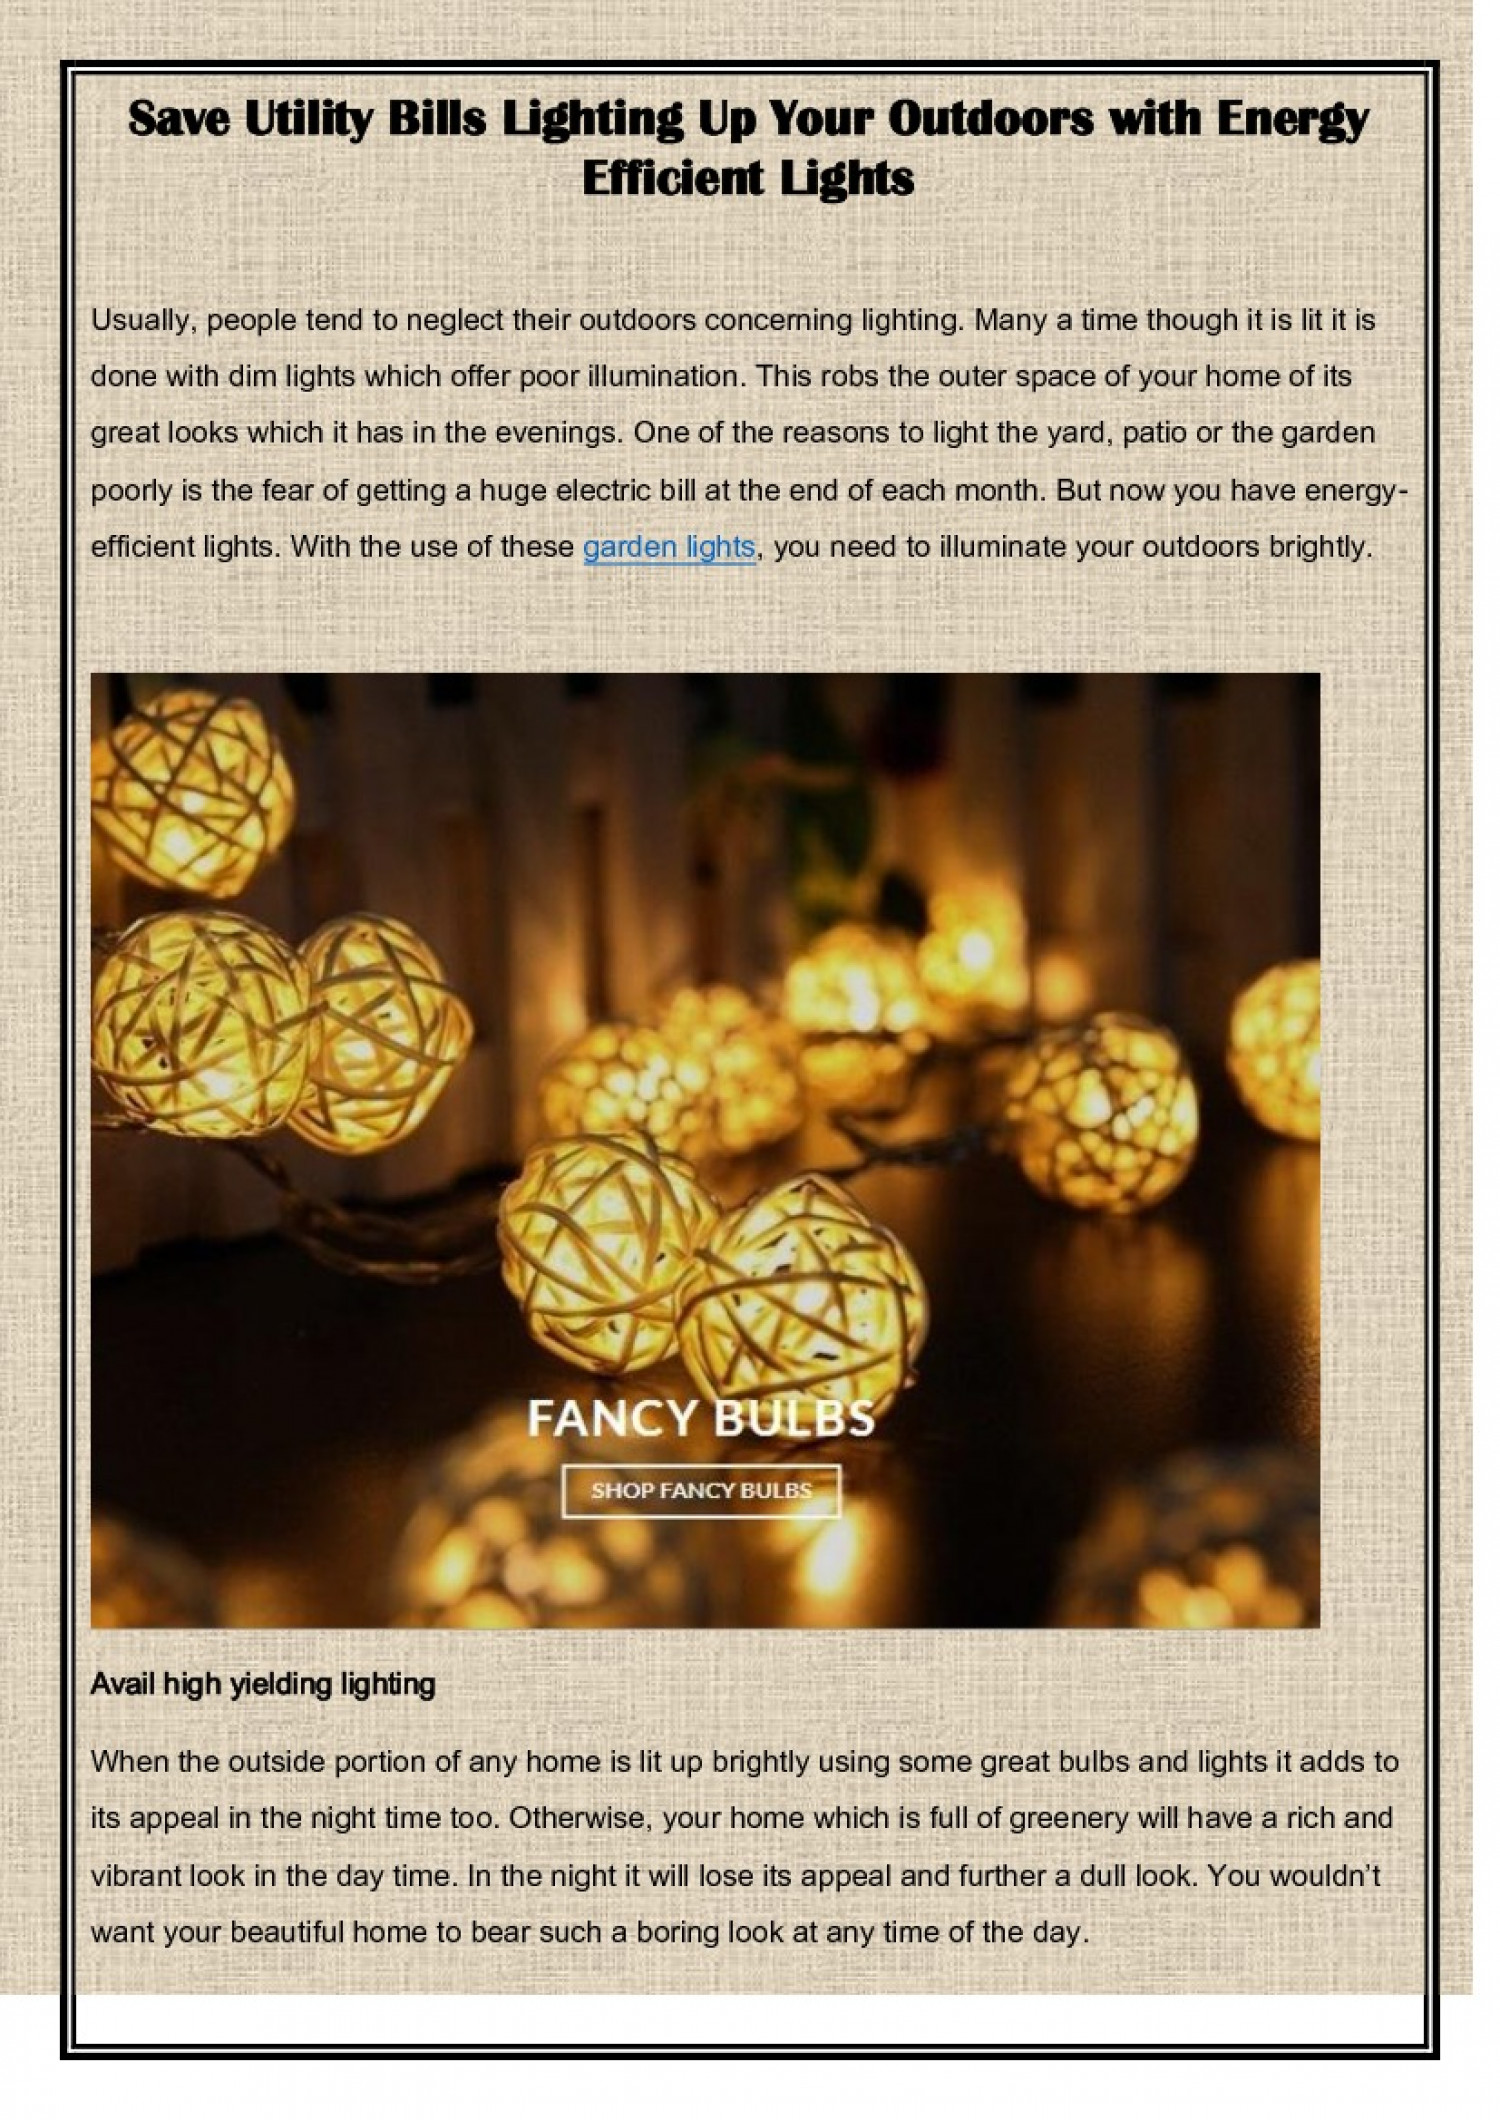 Save Utility Bills Lighting Up Your Outdoors with Energy Efficient Lights Infographic